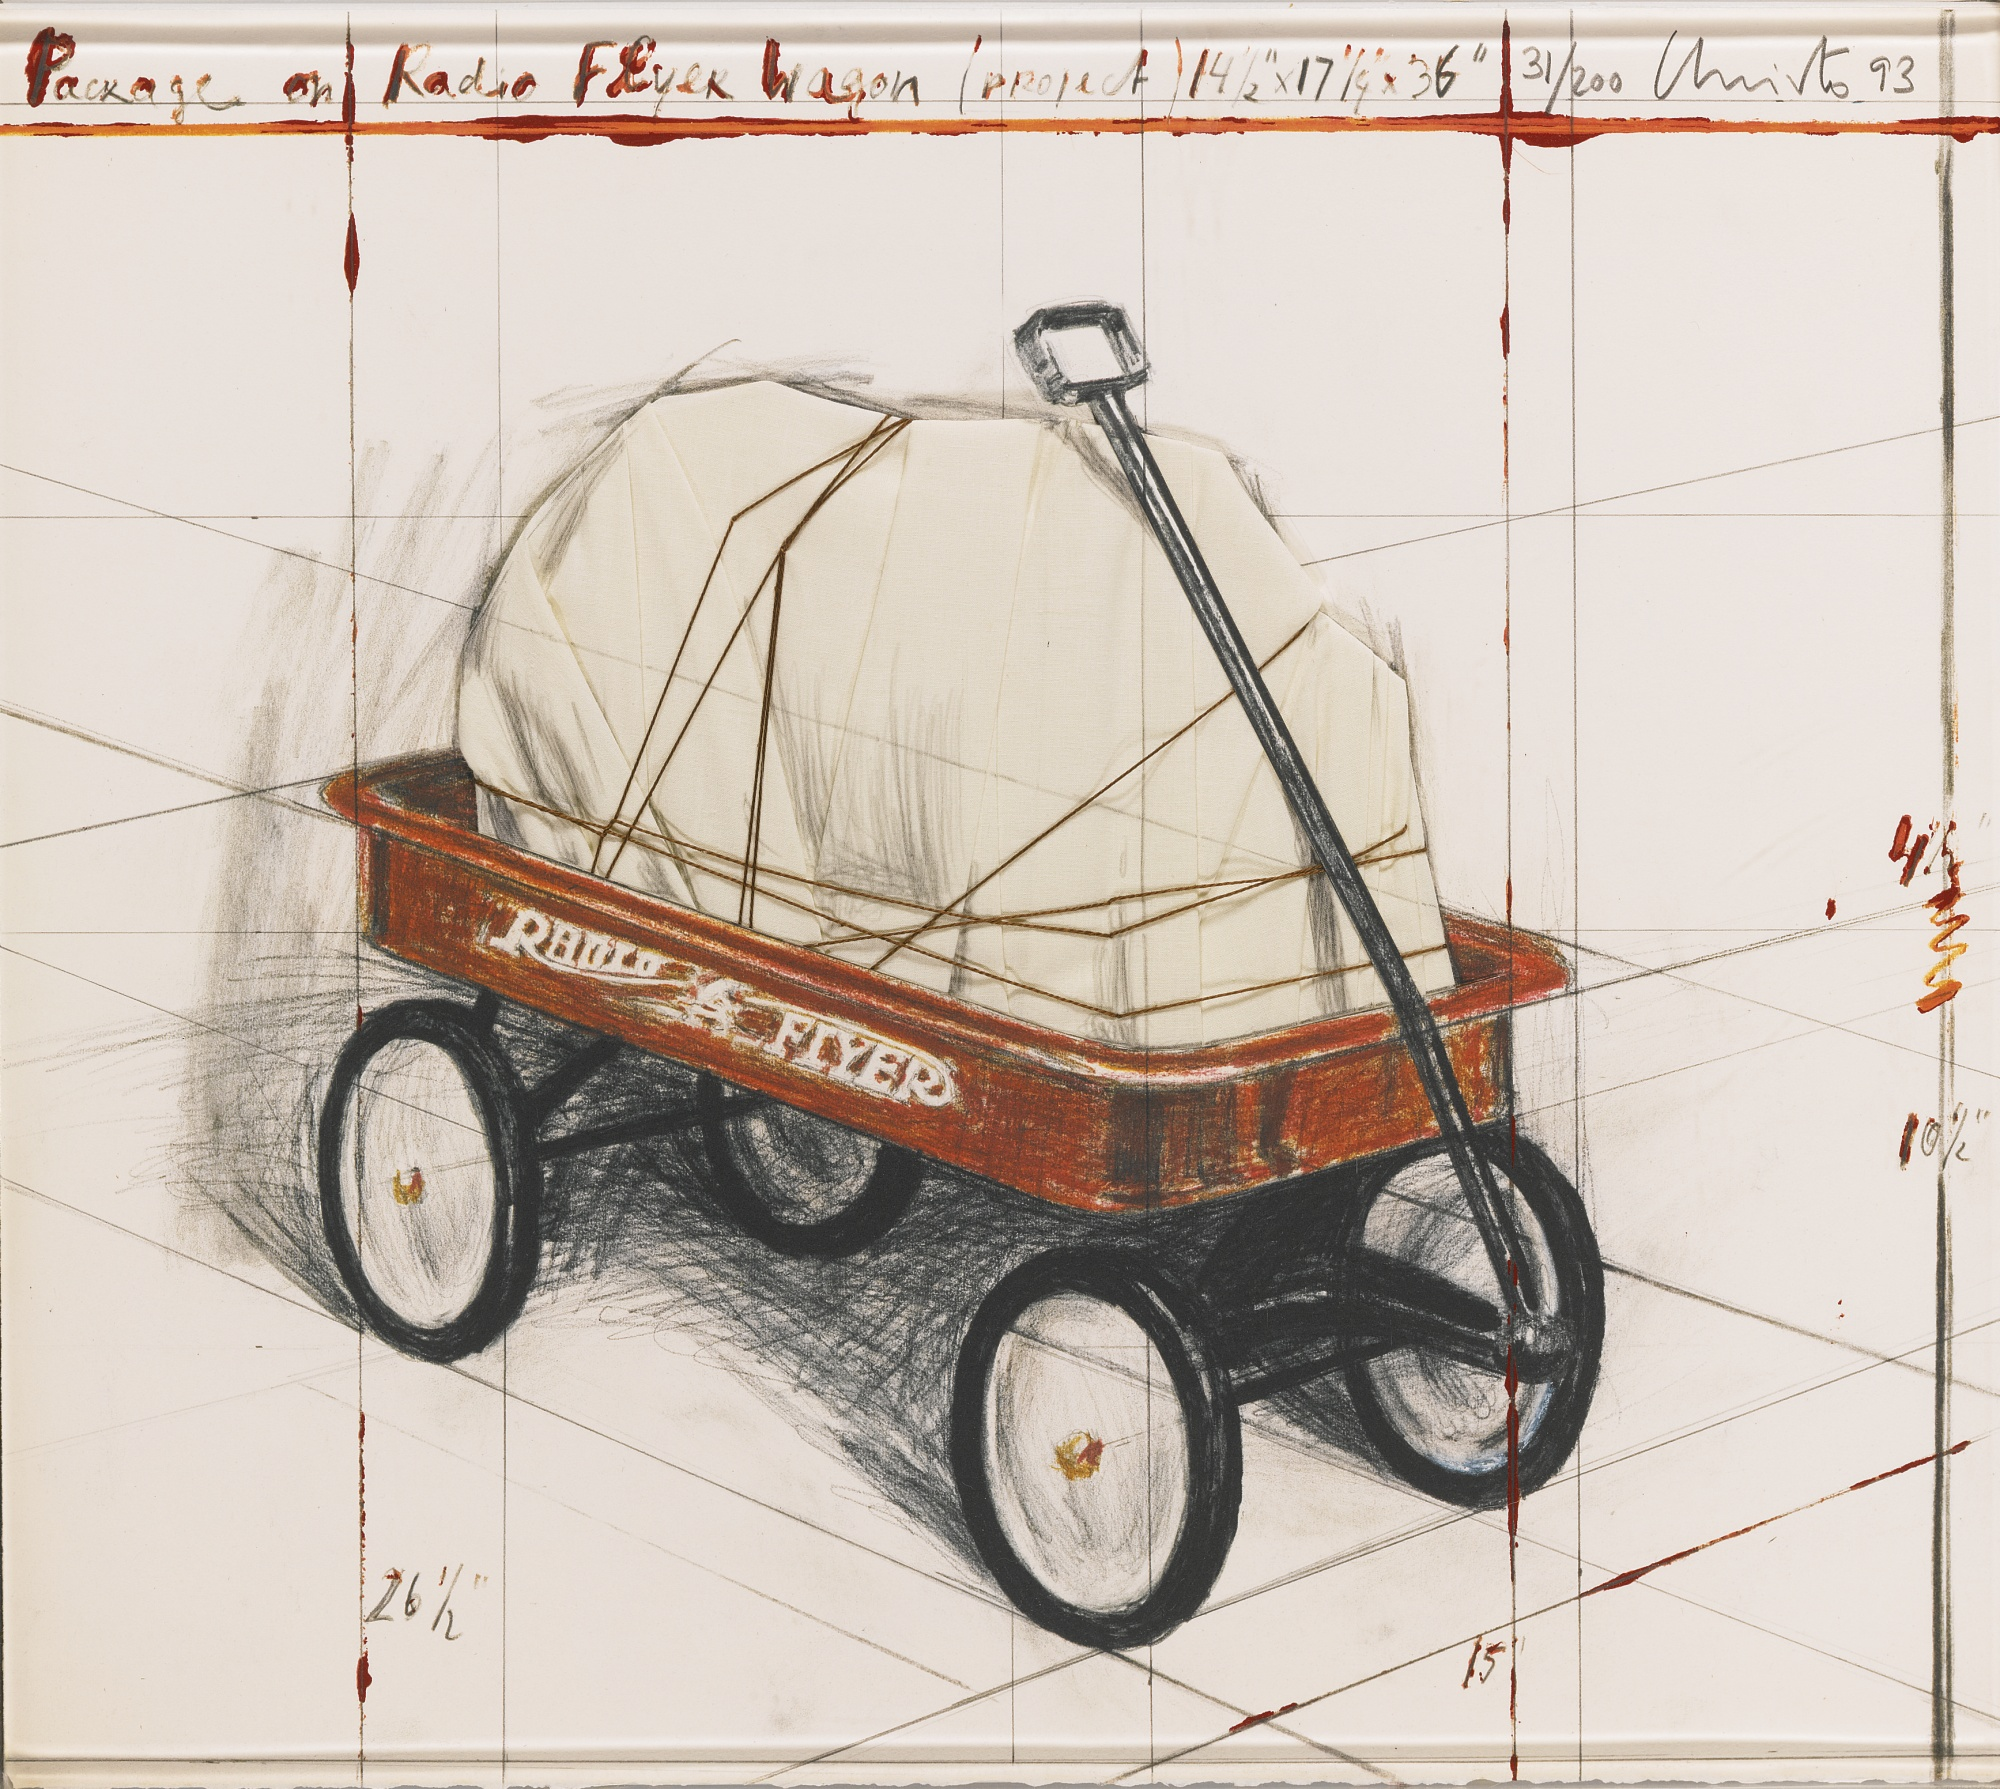 Christo and Jeanne-Claude-Package On Radio Flyer Wagon Project (Schellmann 163)-1993